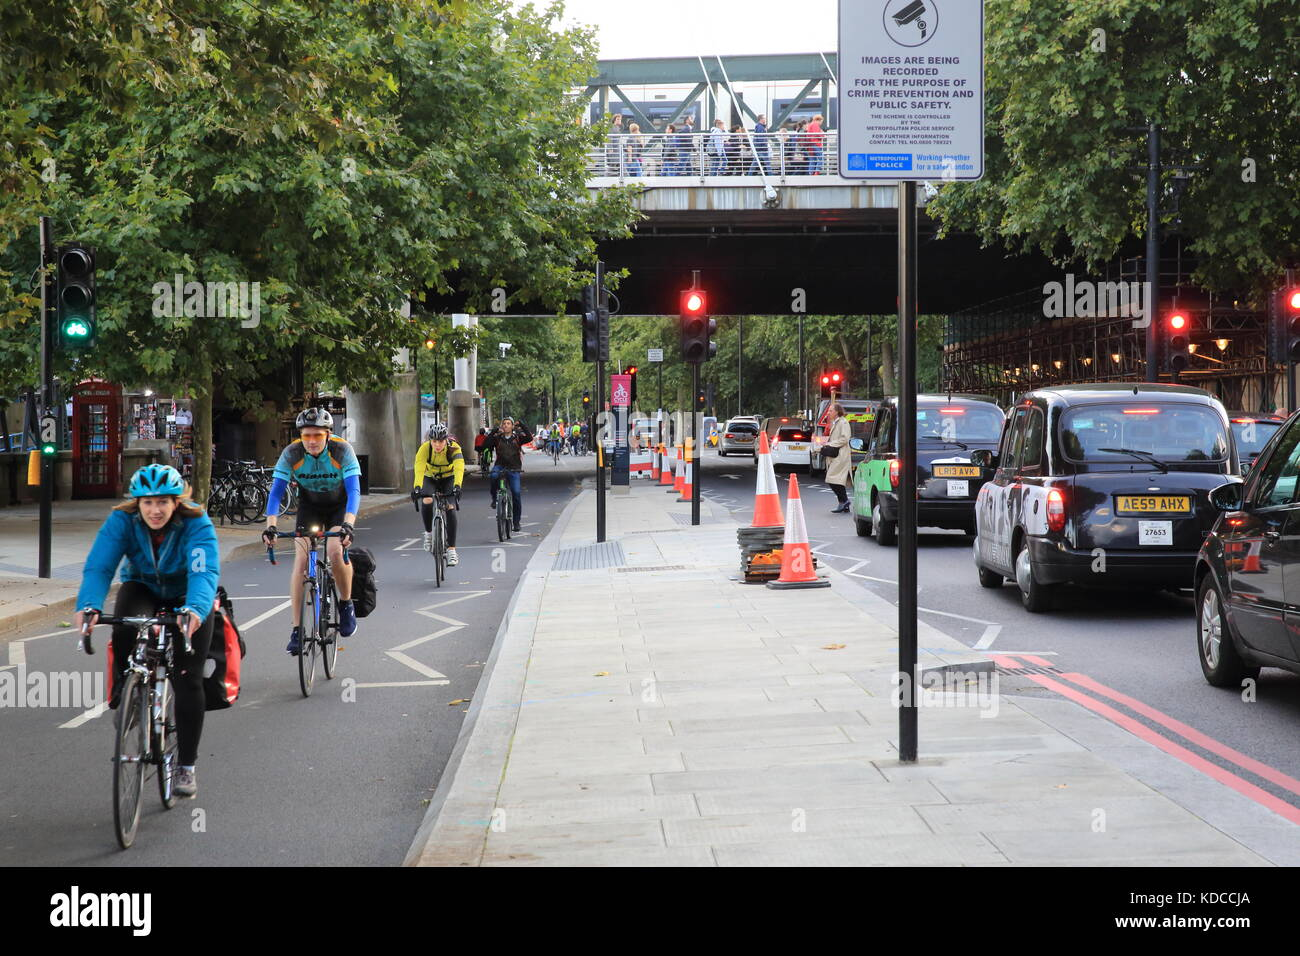 Cyclists in a segregated lane, and traffic on the Embankment in London, England, UK - Stock Image